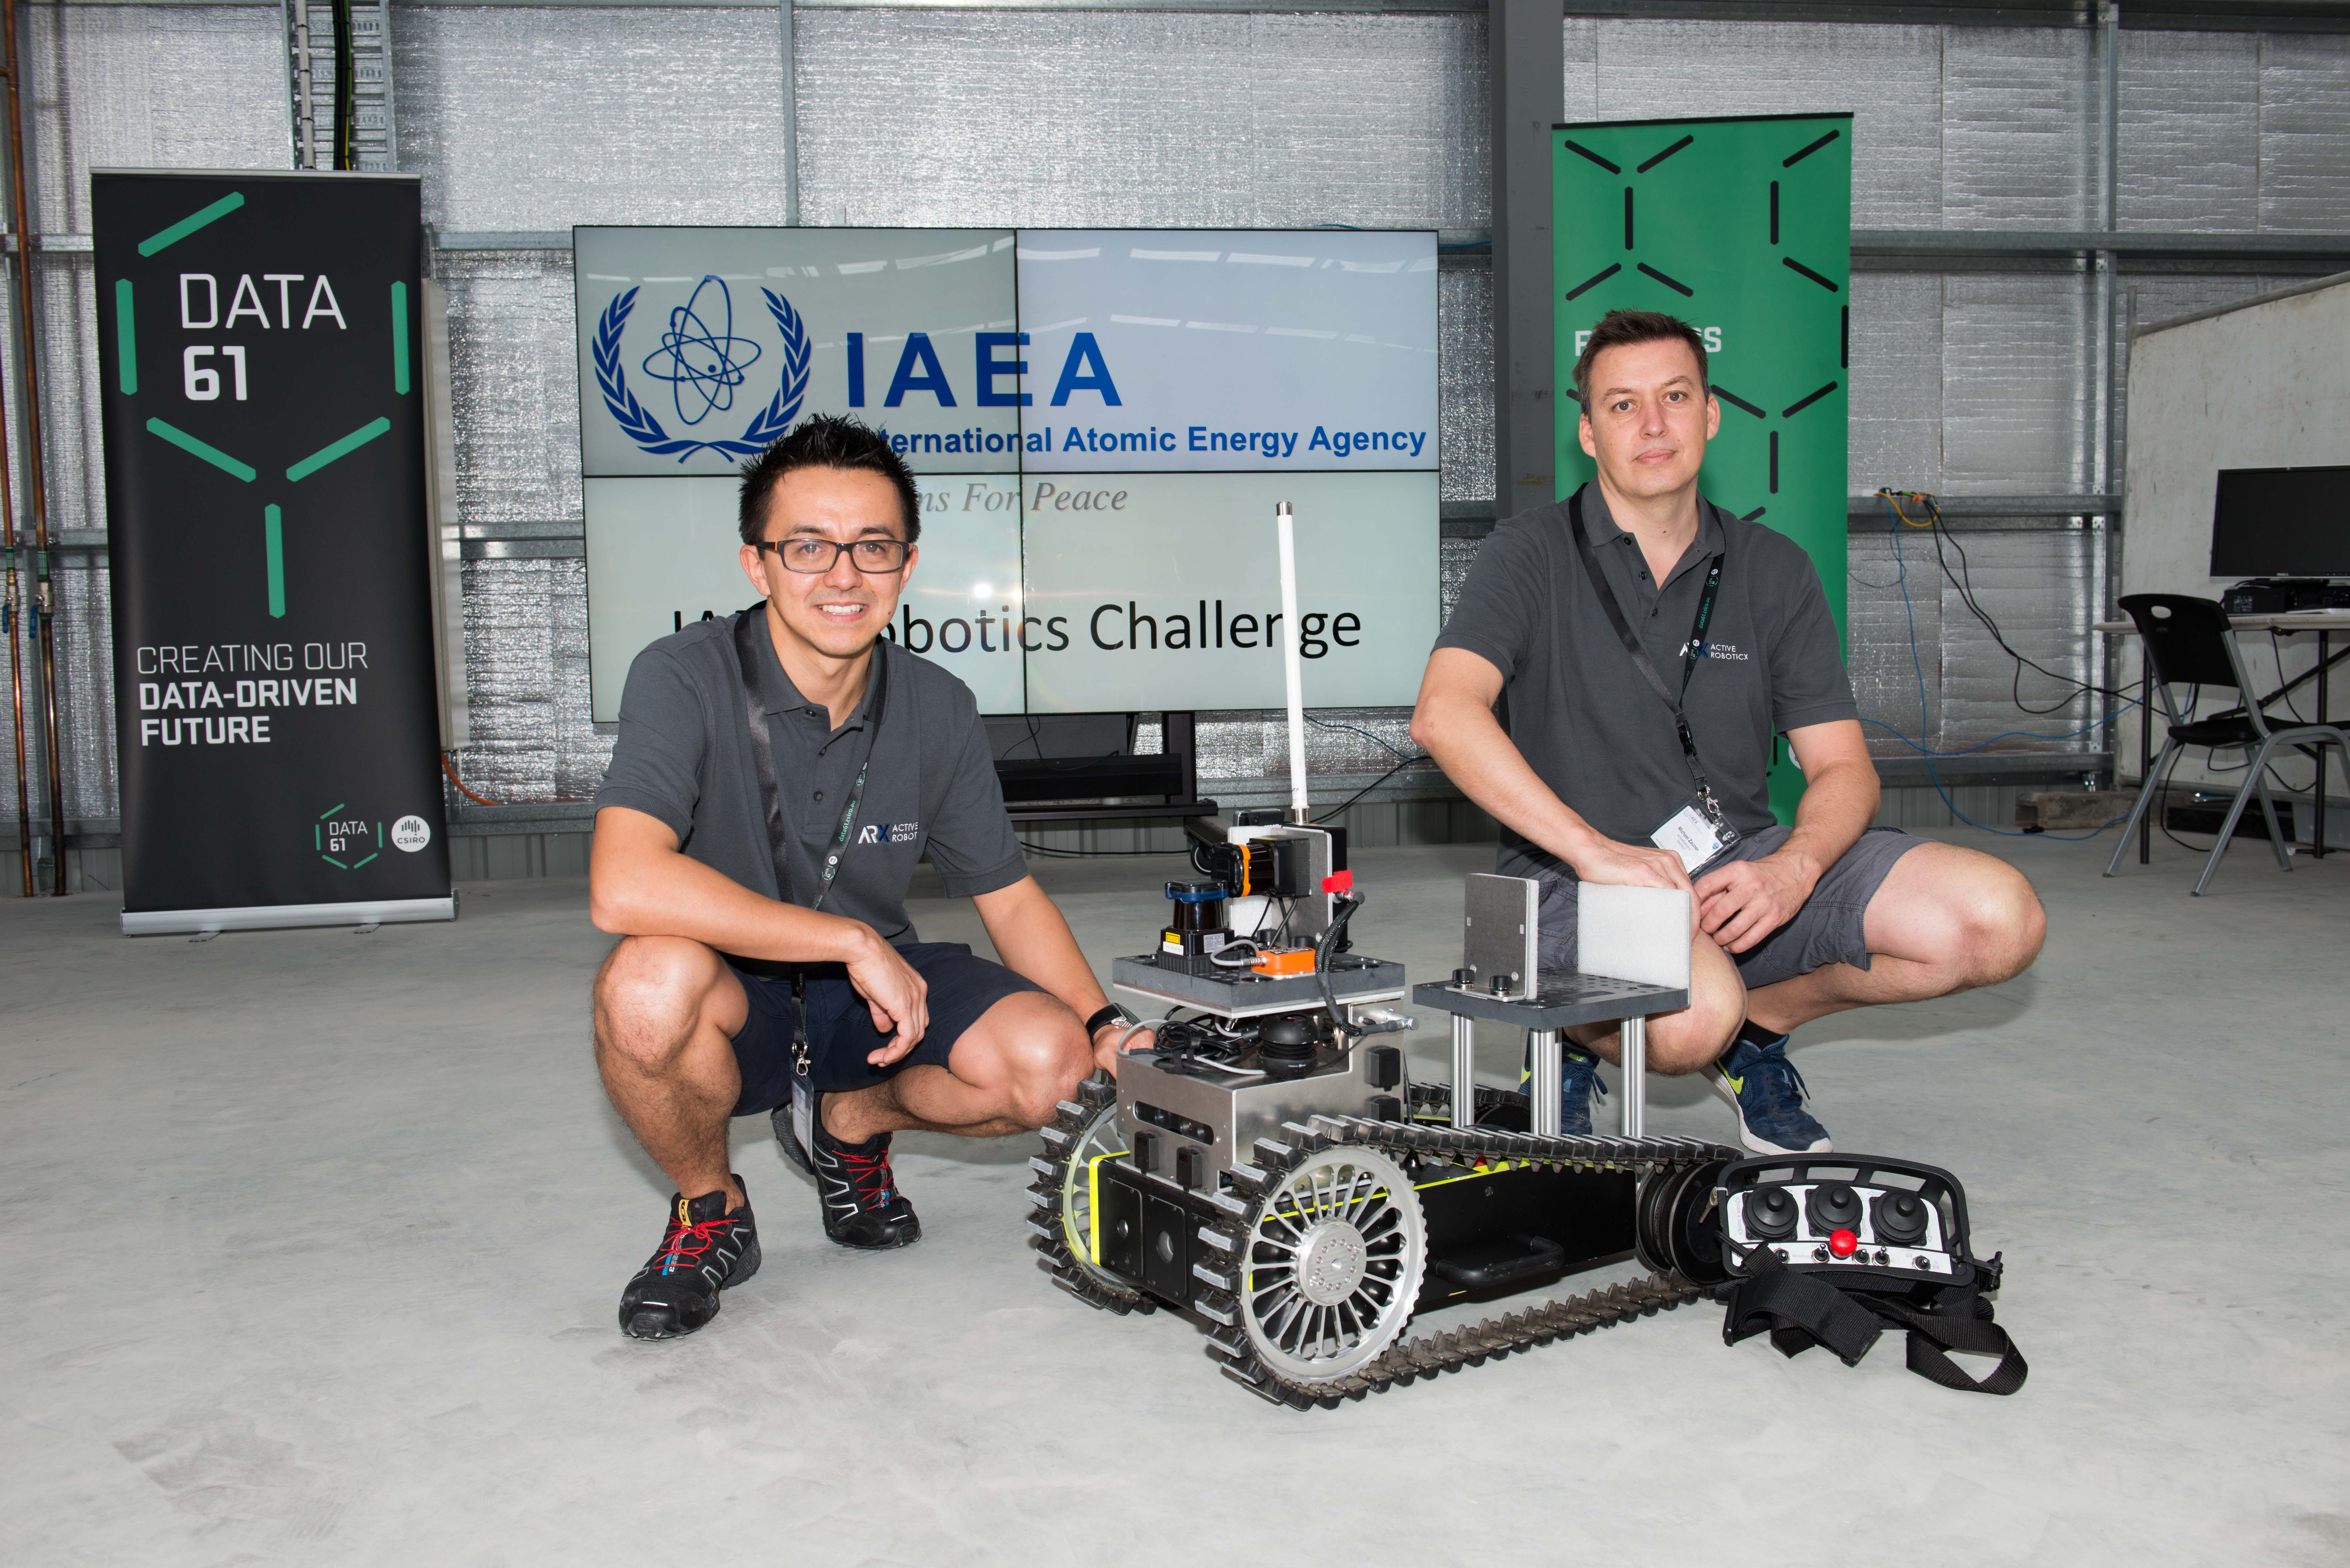 Two men kneel behind a caterpillar tracked robotic device.